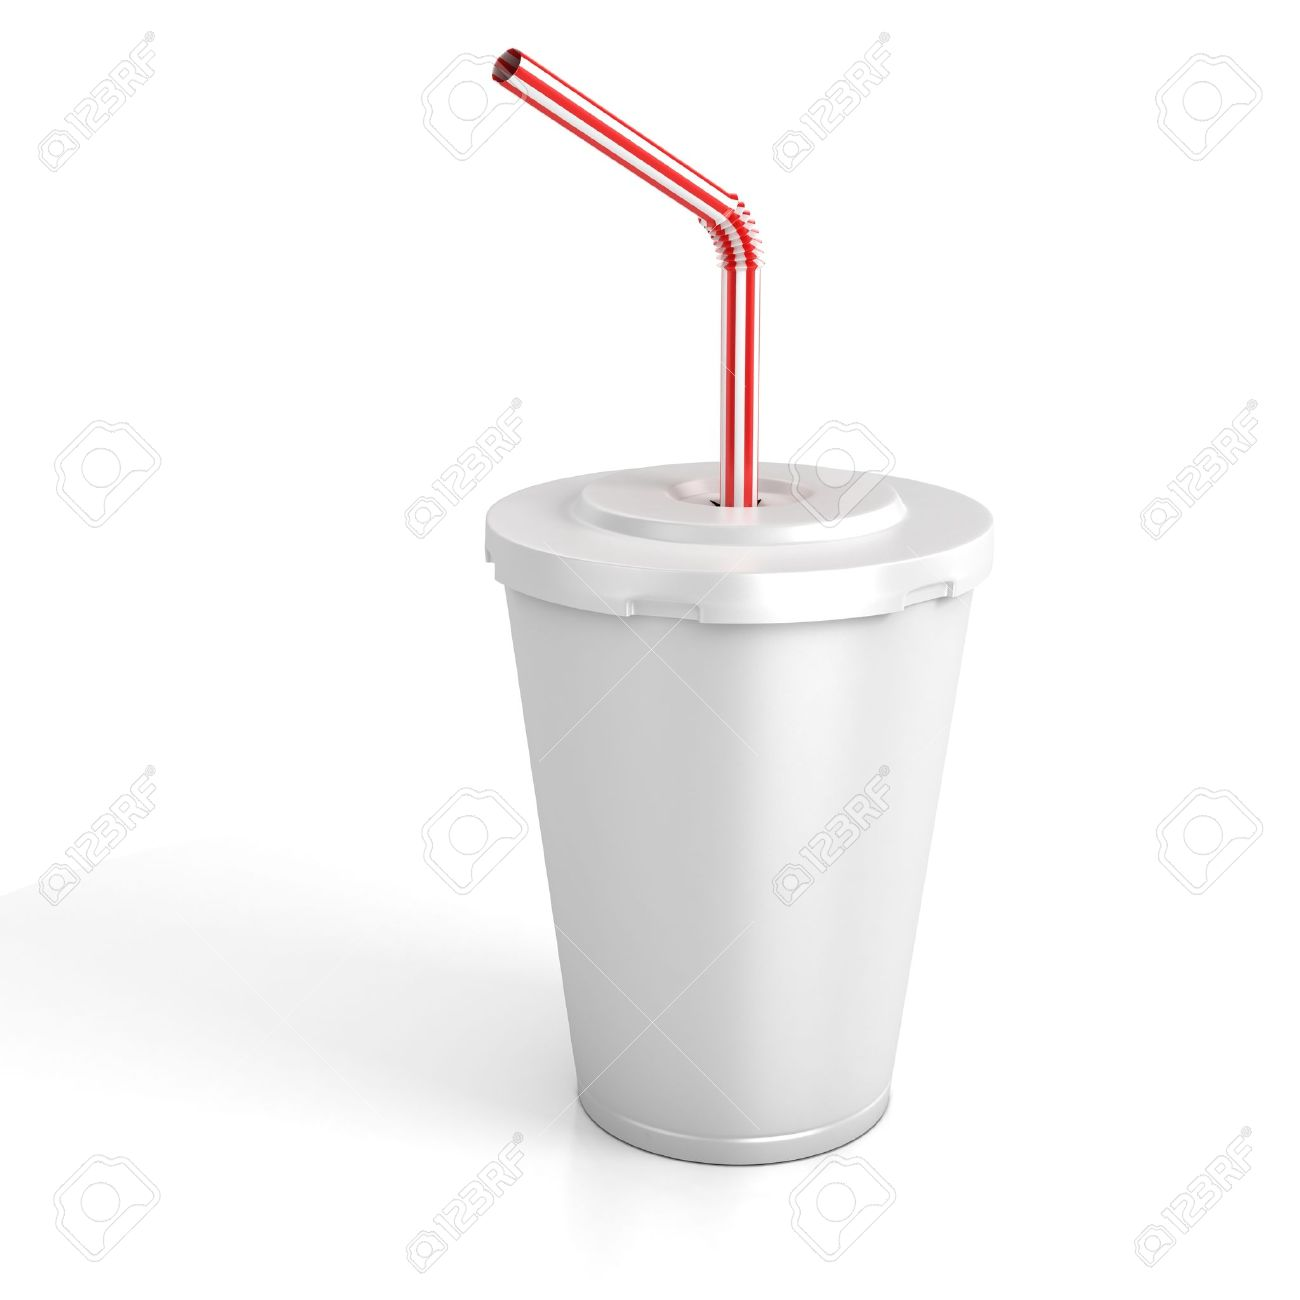 fast food paper cup red tube customize by inserting your stock photo fast food paper cup red tube customize by inserting your own text on the copy space